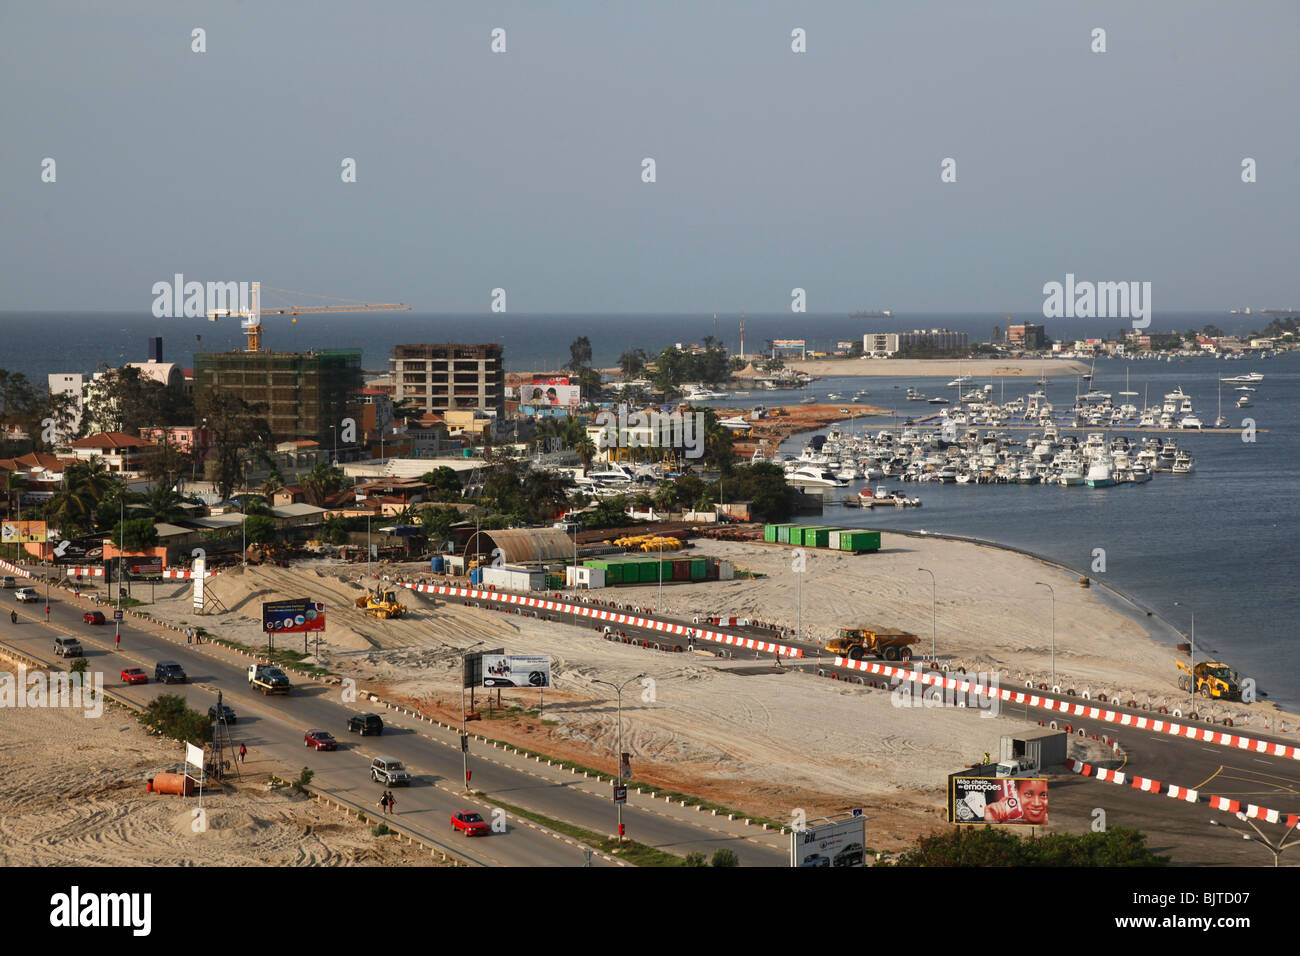 Main road leading up to the The Ilha and Marina. As seen from the Fortaleza de Sao Miguel. Luanda. Angola. Africa. - Stock Image